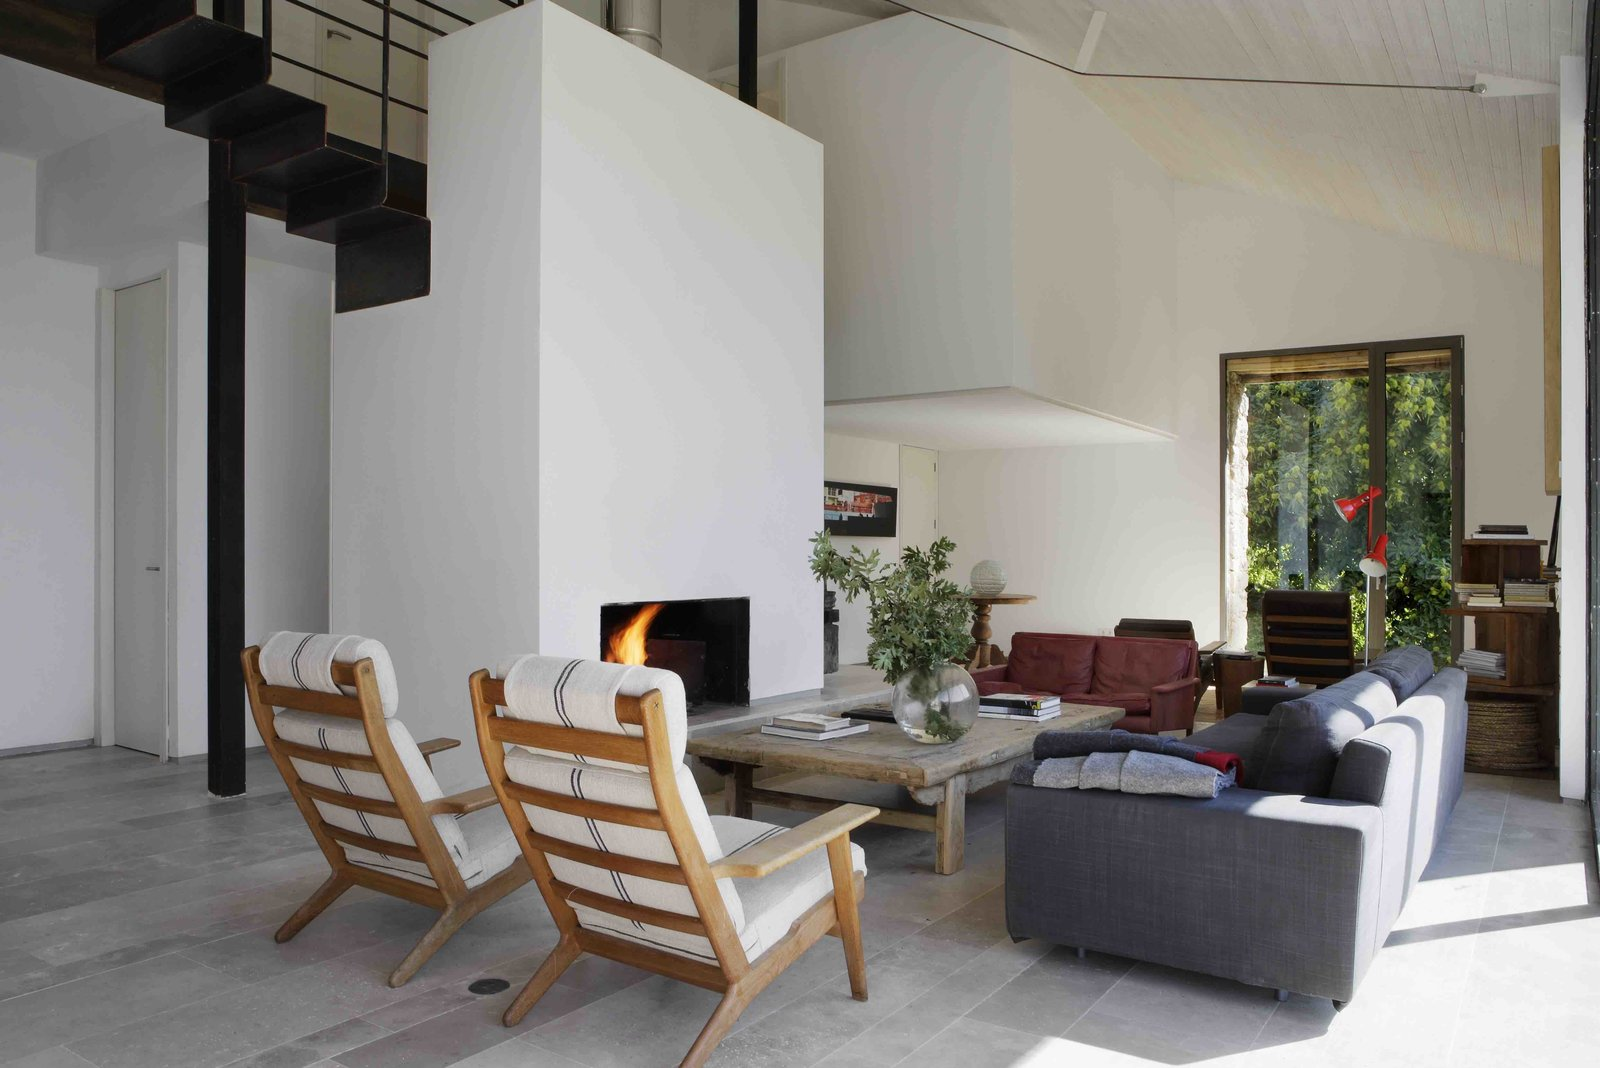 Living Room, Chair, Sofa, Floor Lighting, Standard Layout Fireplace, and Coffee Tables  Photo 4 of 14 in An Abandoned Stable in Spain Is Transformed Into a Sustainable Vacation Home For Rent